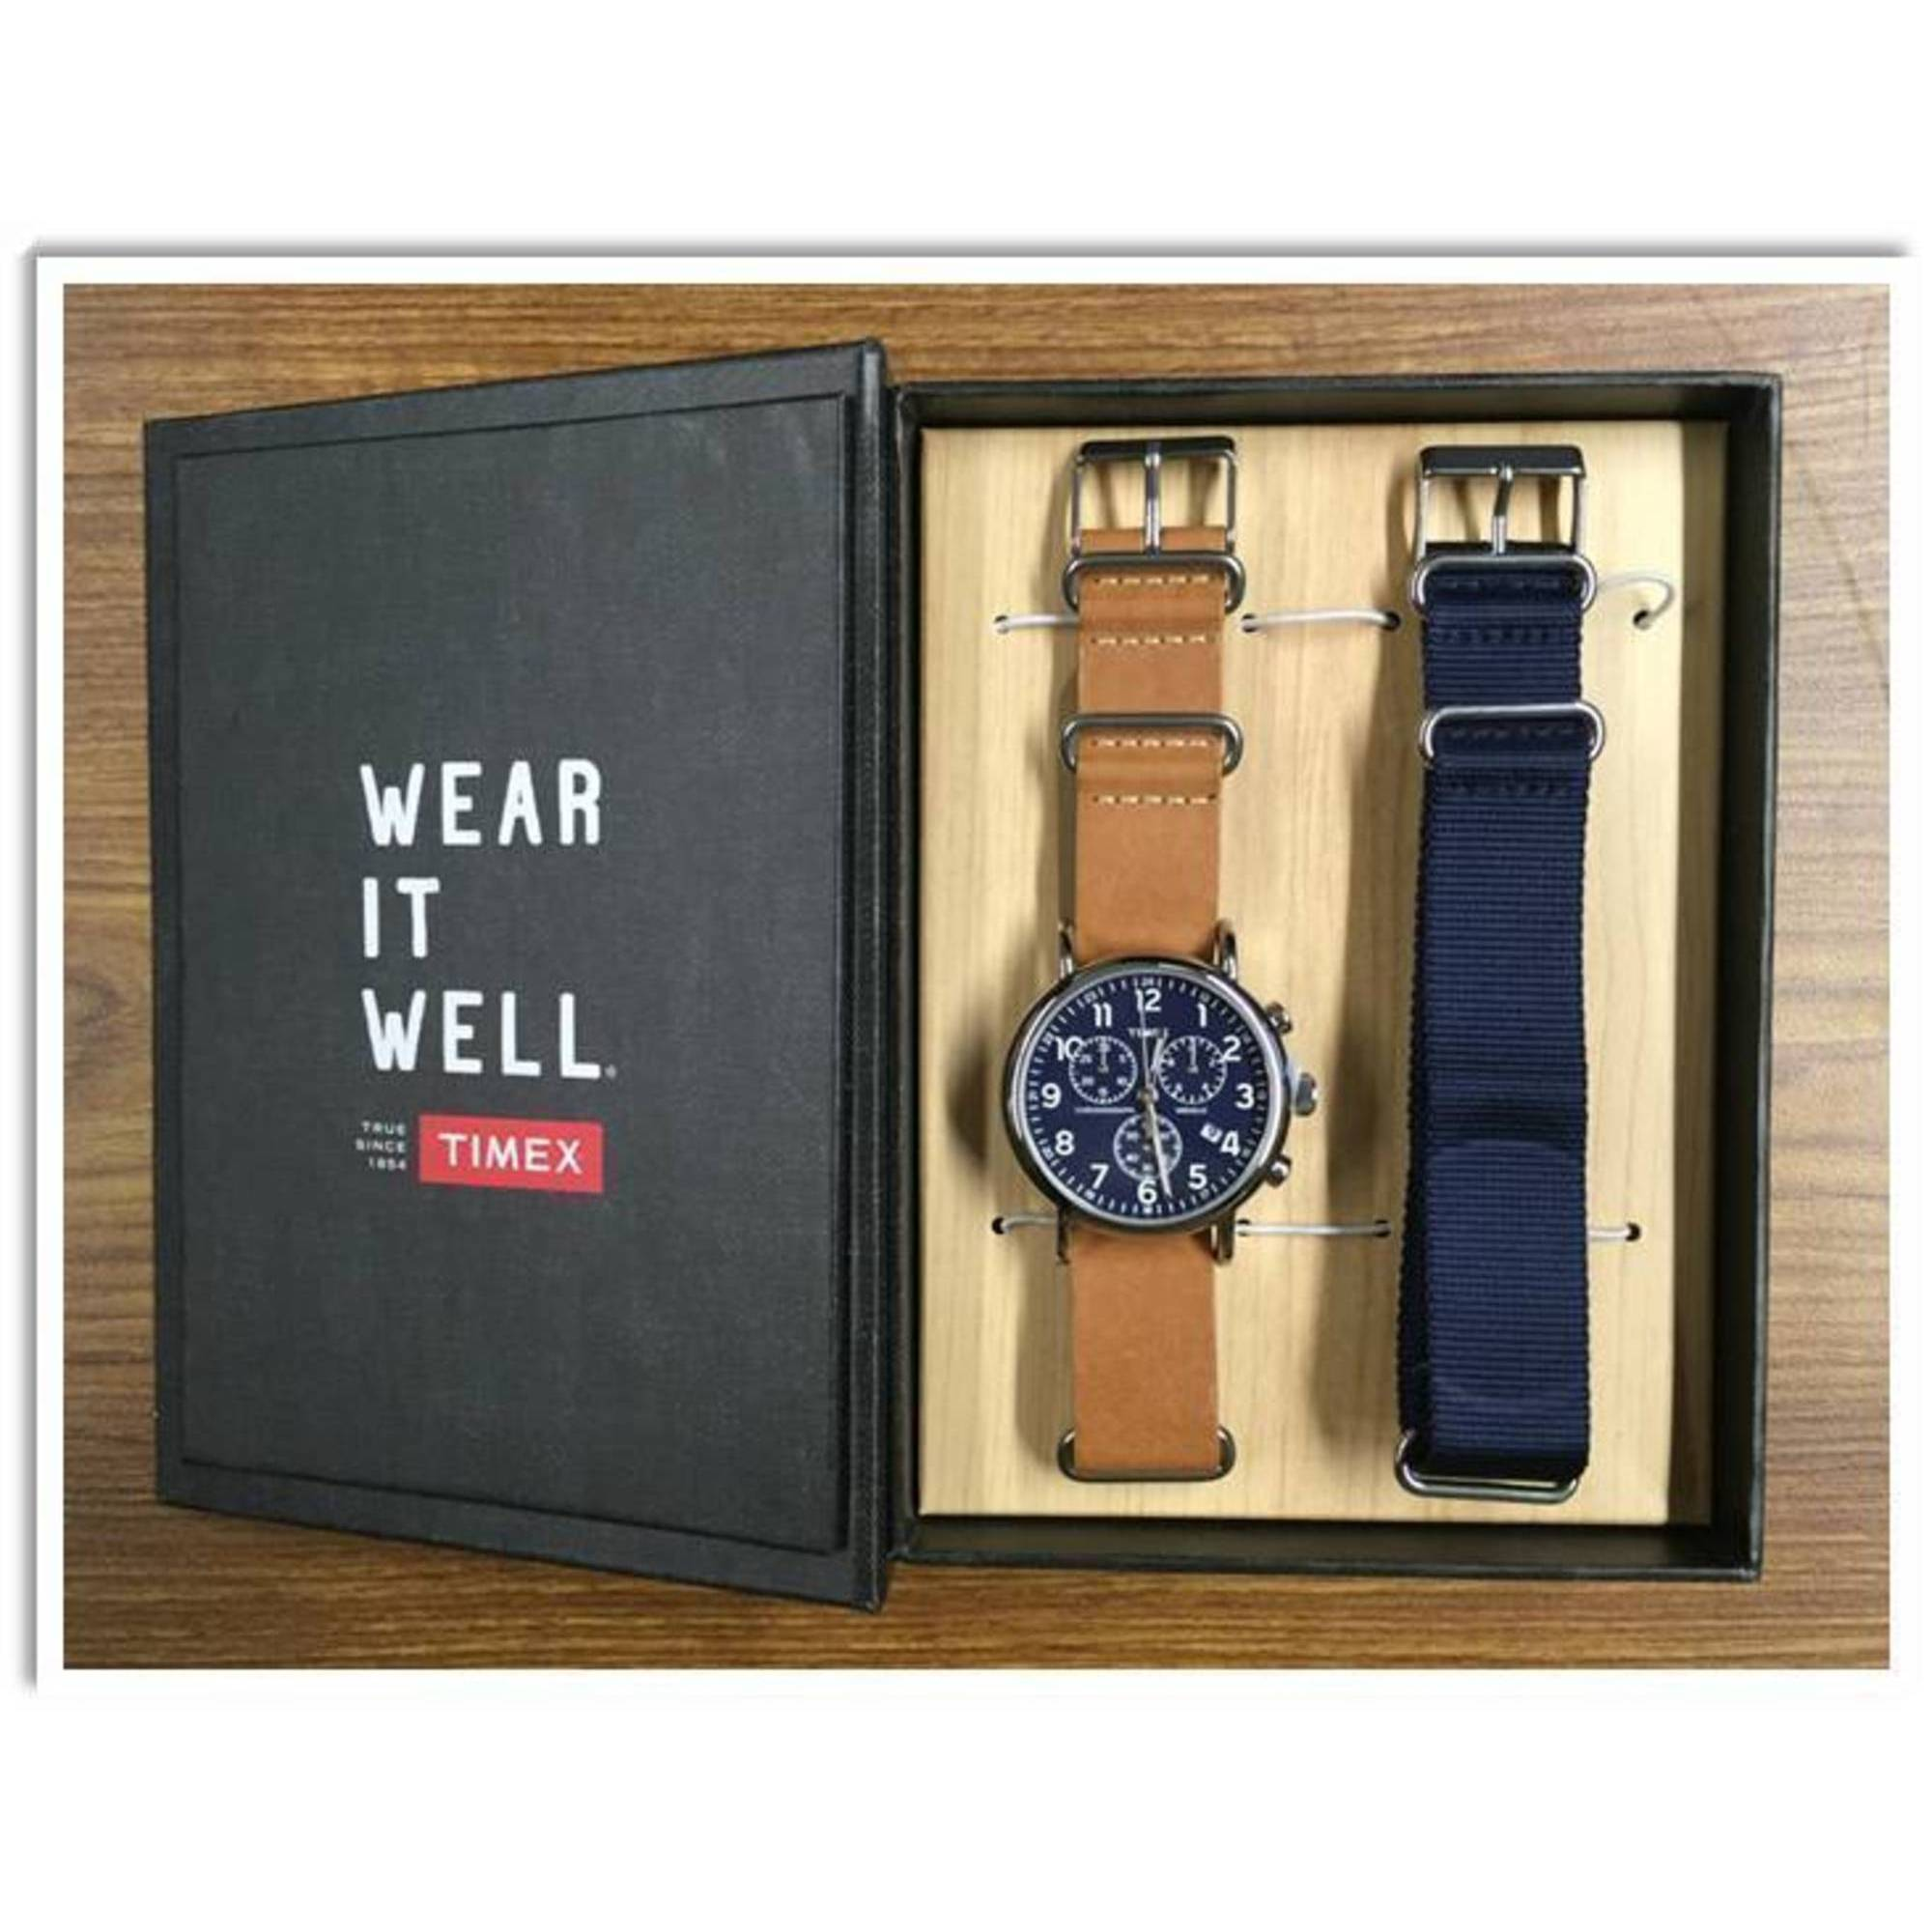 35c74e5c5 Image is loading Timex-Weekender-Chronograph-40mm-Leather-Strap-Watch-Gift-